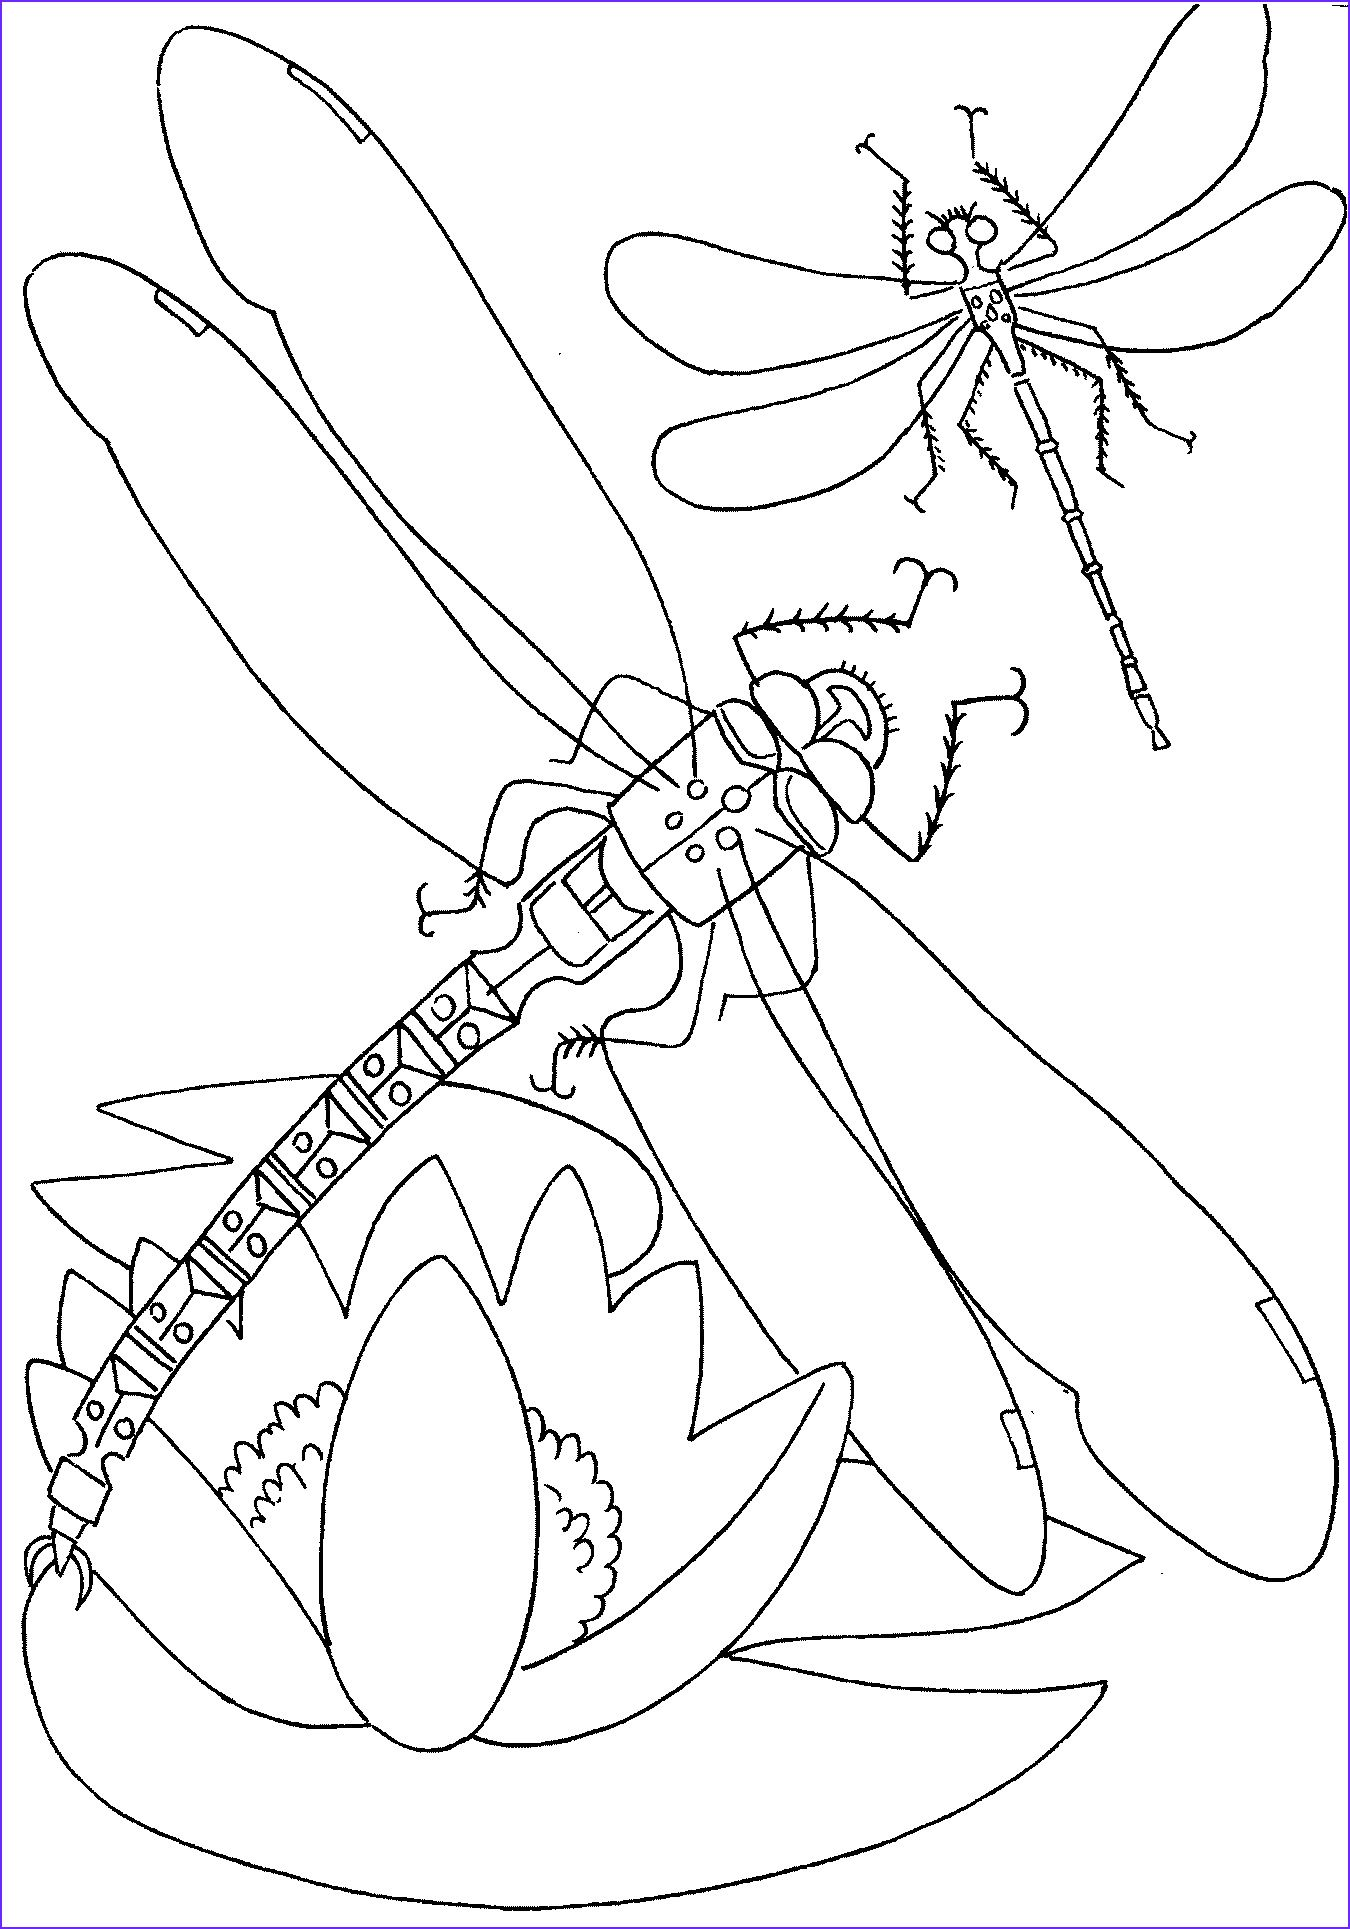 Coloring Sheets For Toddlers Butterfly Coloring Pages For Kids